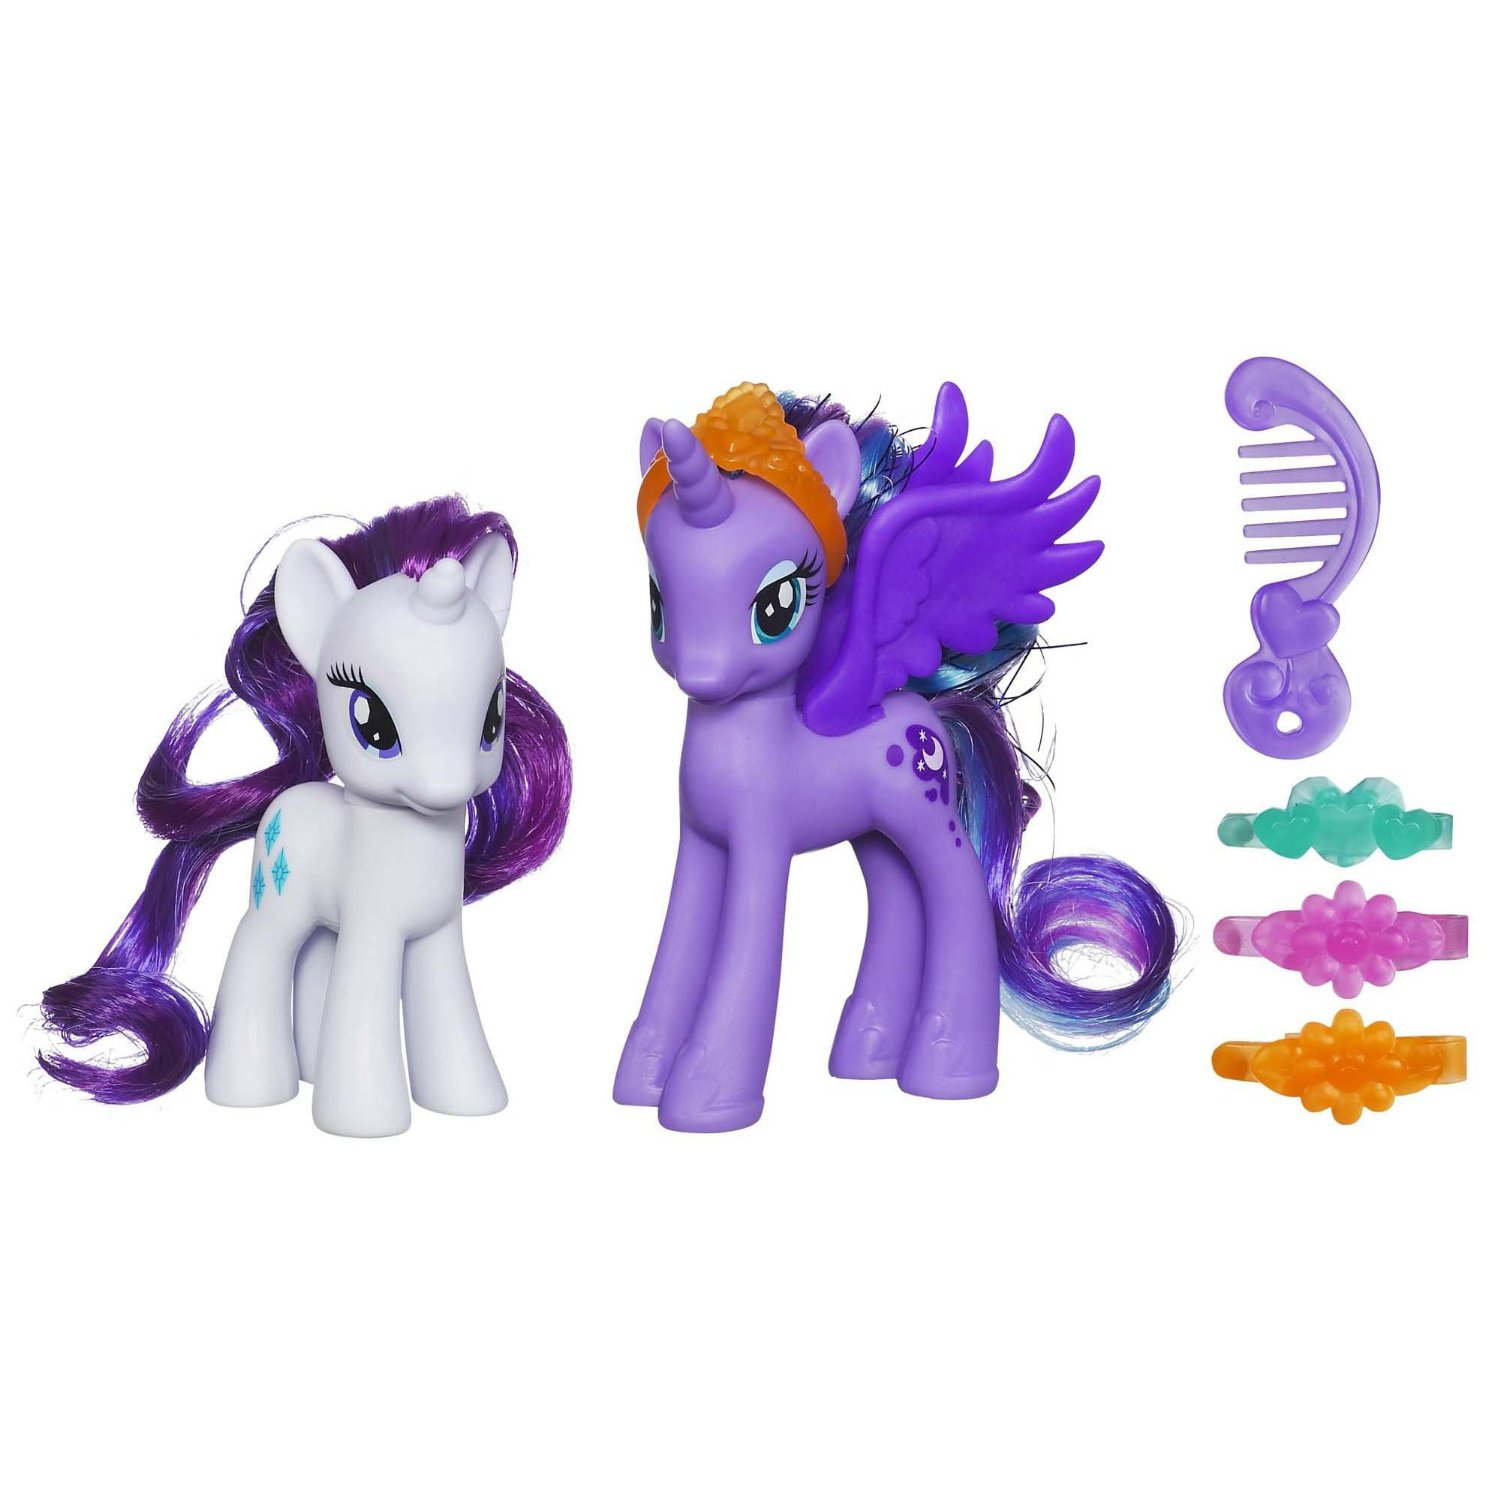 My Little Pony Toys : My little pony toys princess luna and rarity figures at